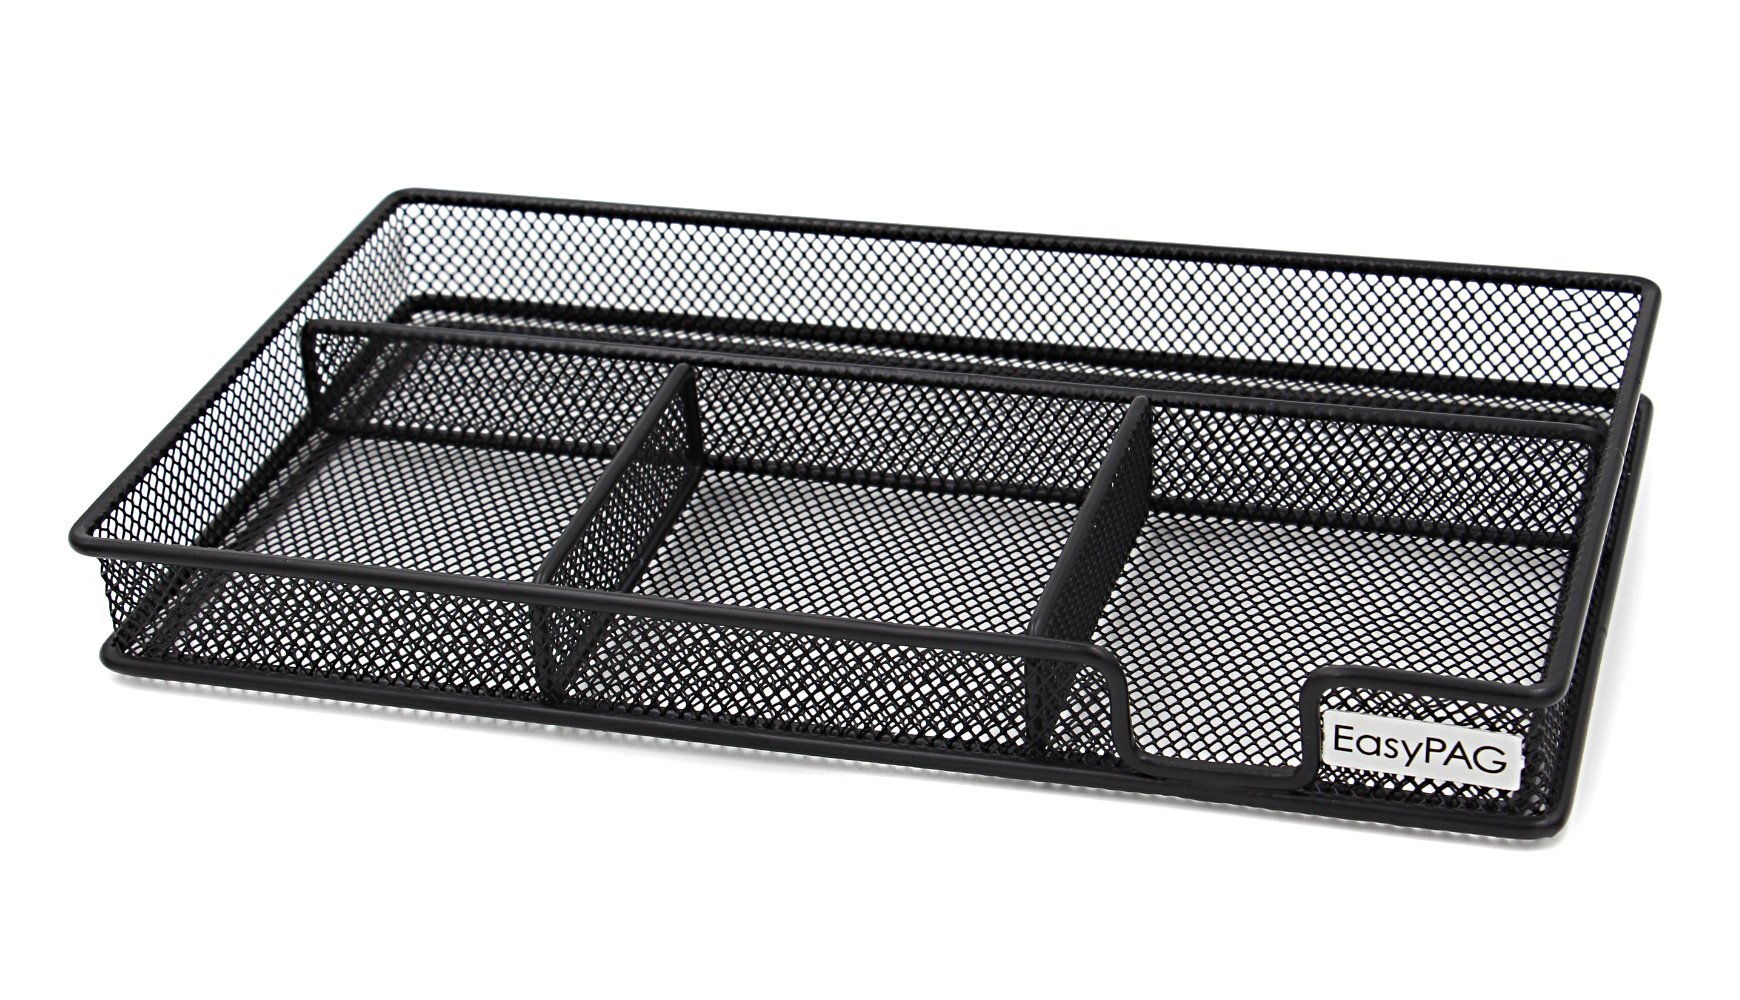 EasyPAG Mesh Collection Desk Accessories Drawer Organizer,11.5 x 6.25 x 1.25 inch Black